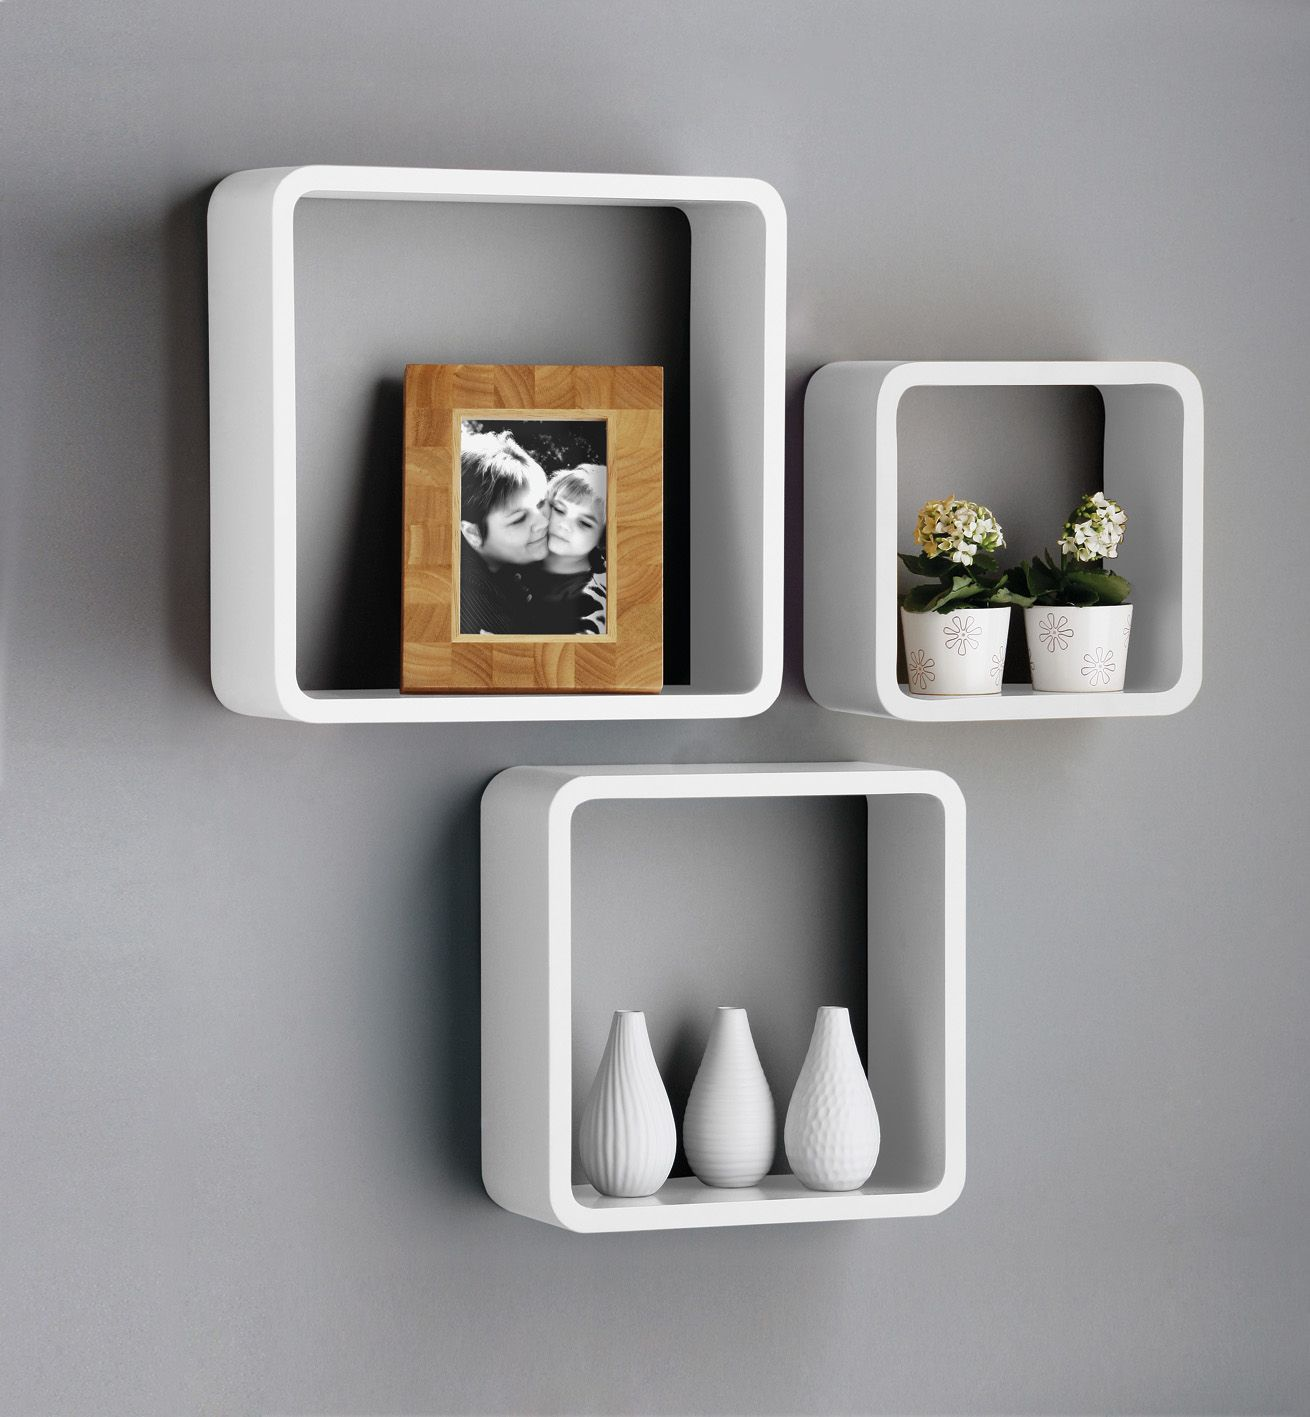 details about new set white black square floating cube wall shelves storage shelf cubes fireplace mantel brackets under granite countertops ikea besta extra coat rack organizer